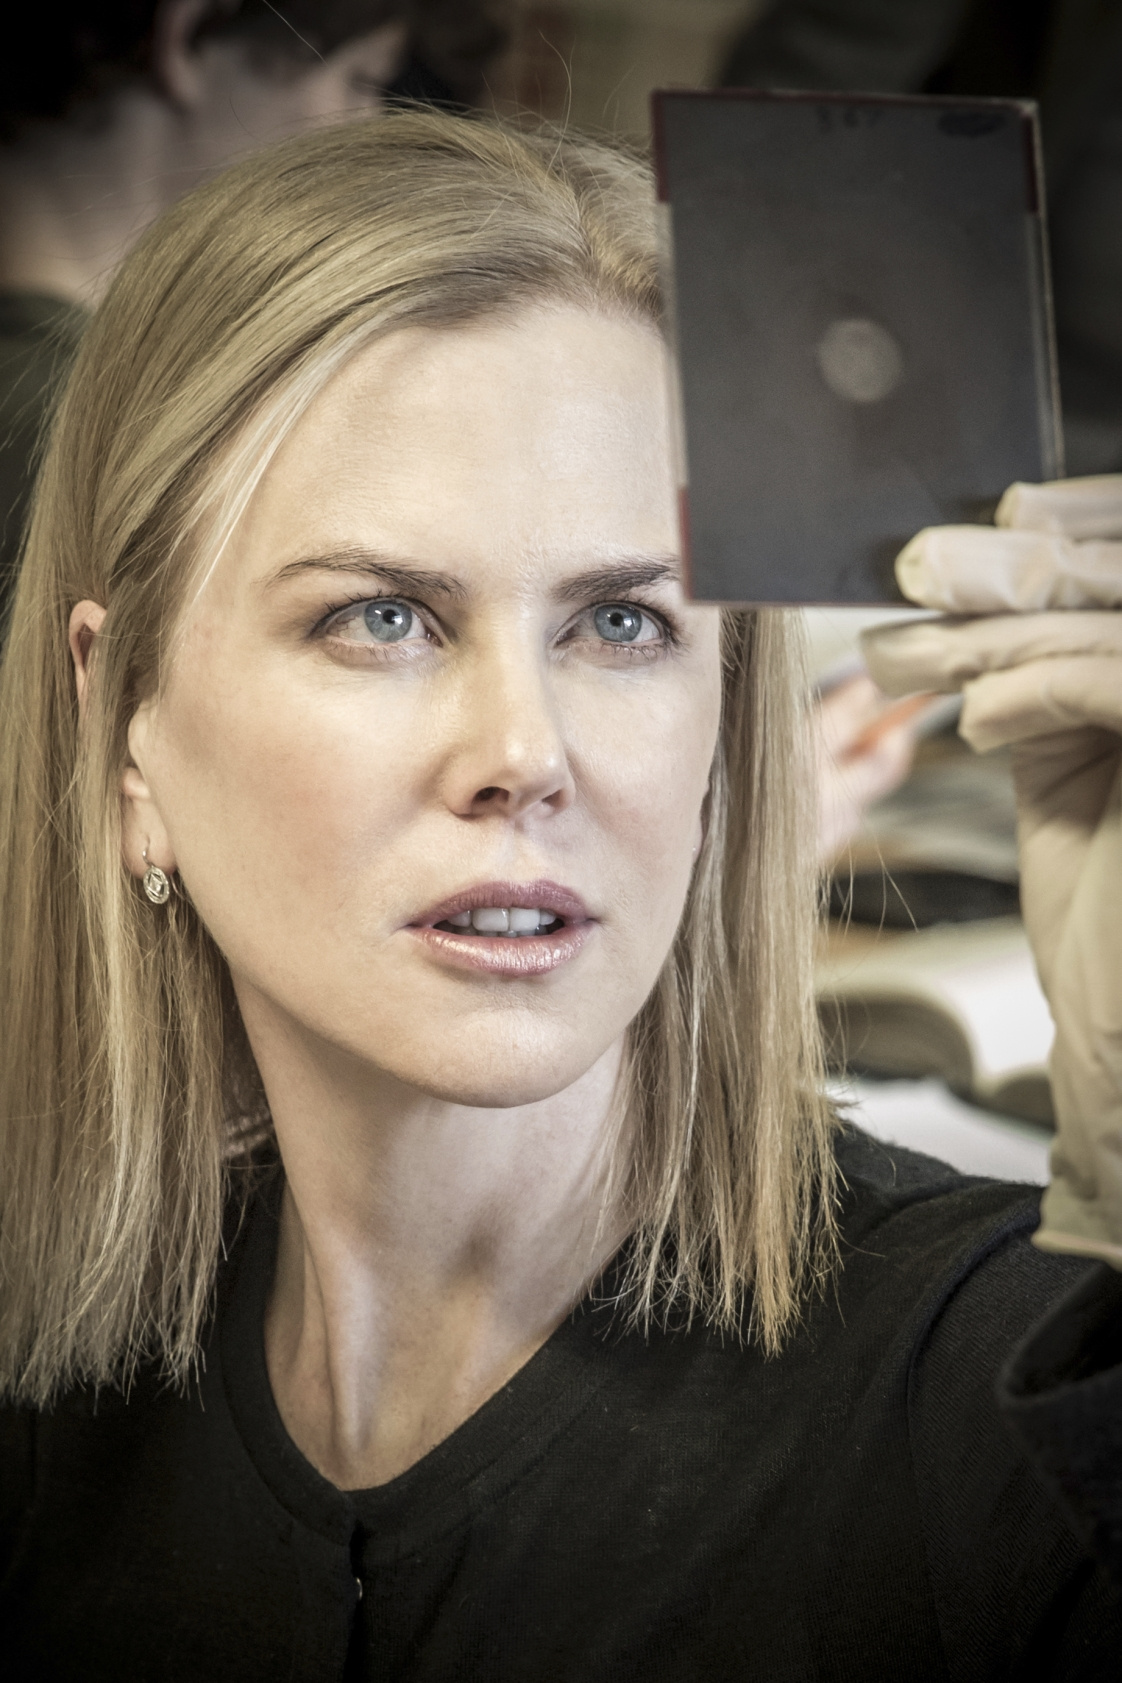 Actress Nicole Kidman visiting King's College London to research play about Rosalind Franklin